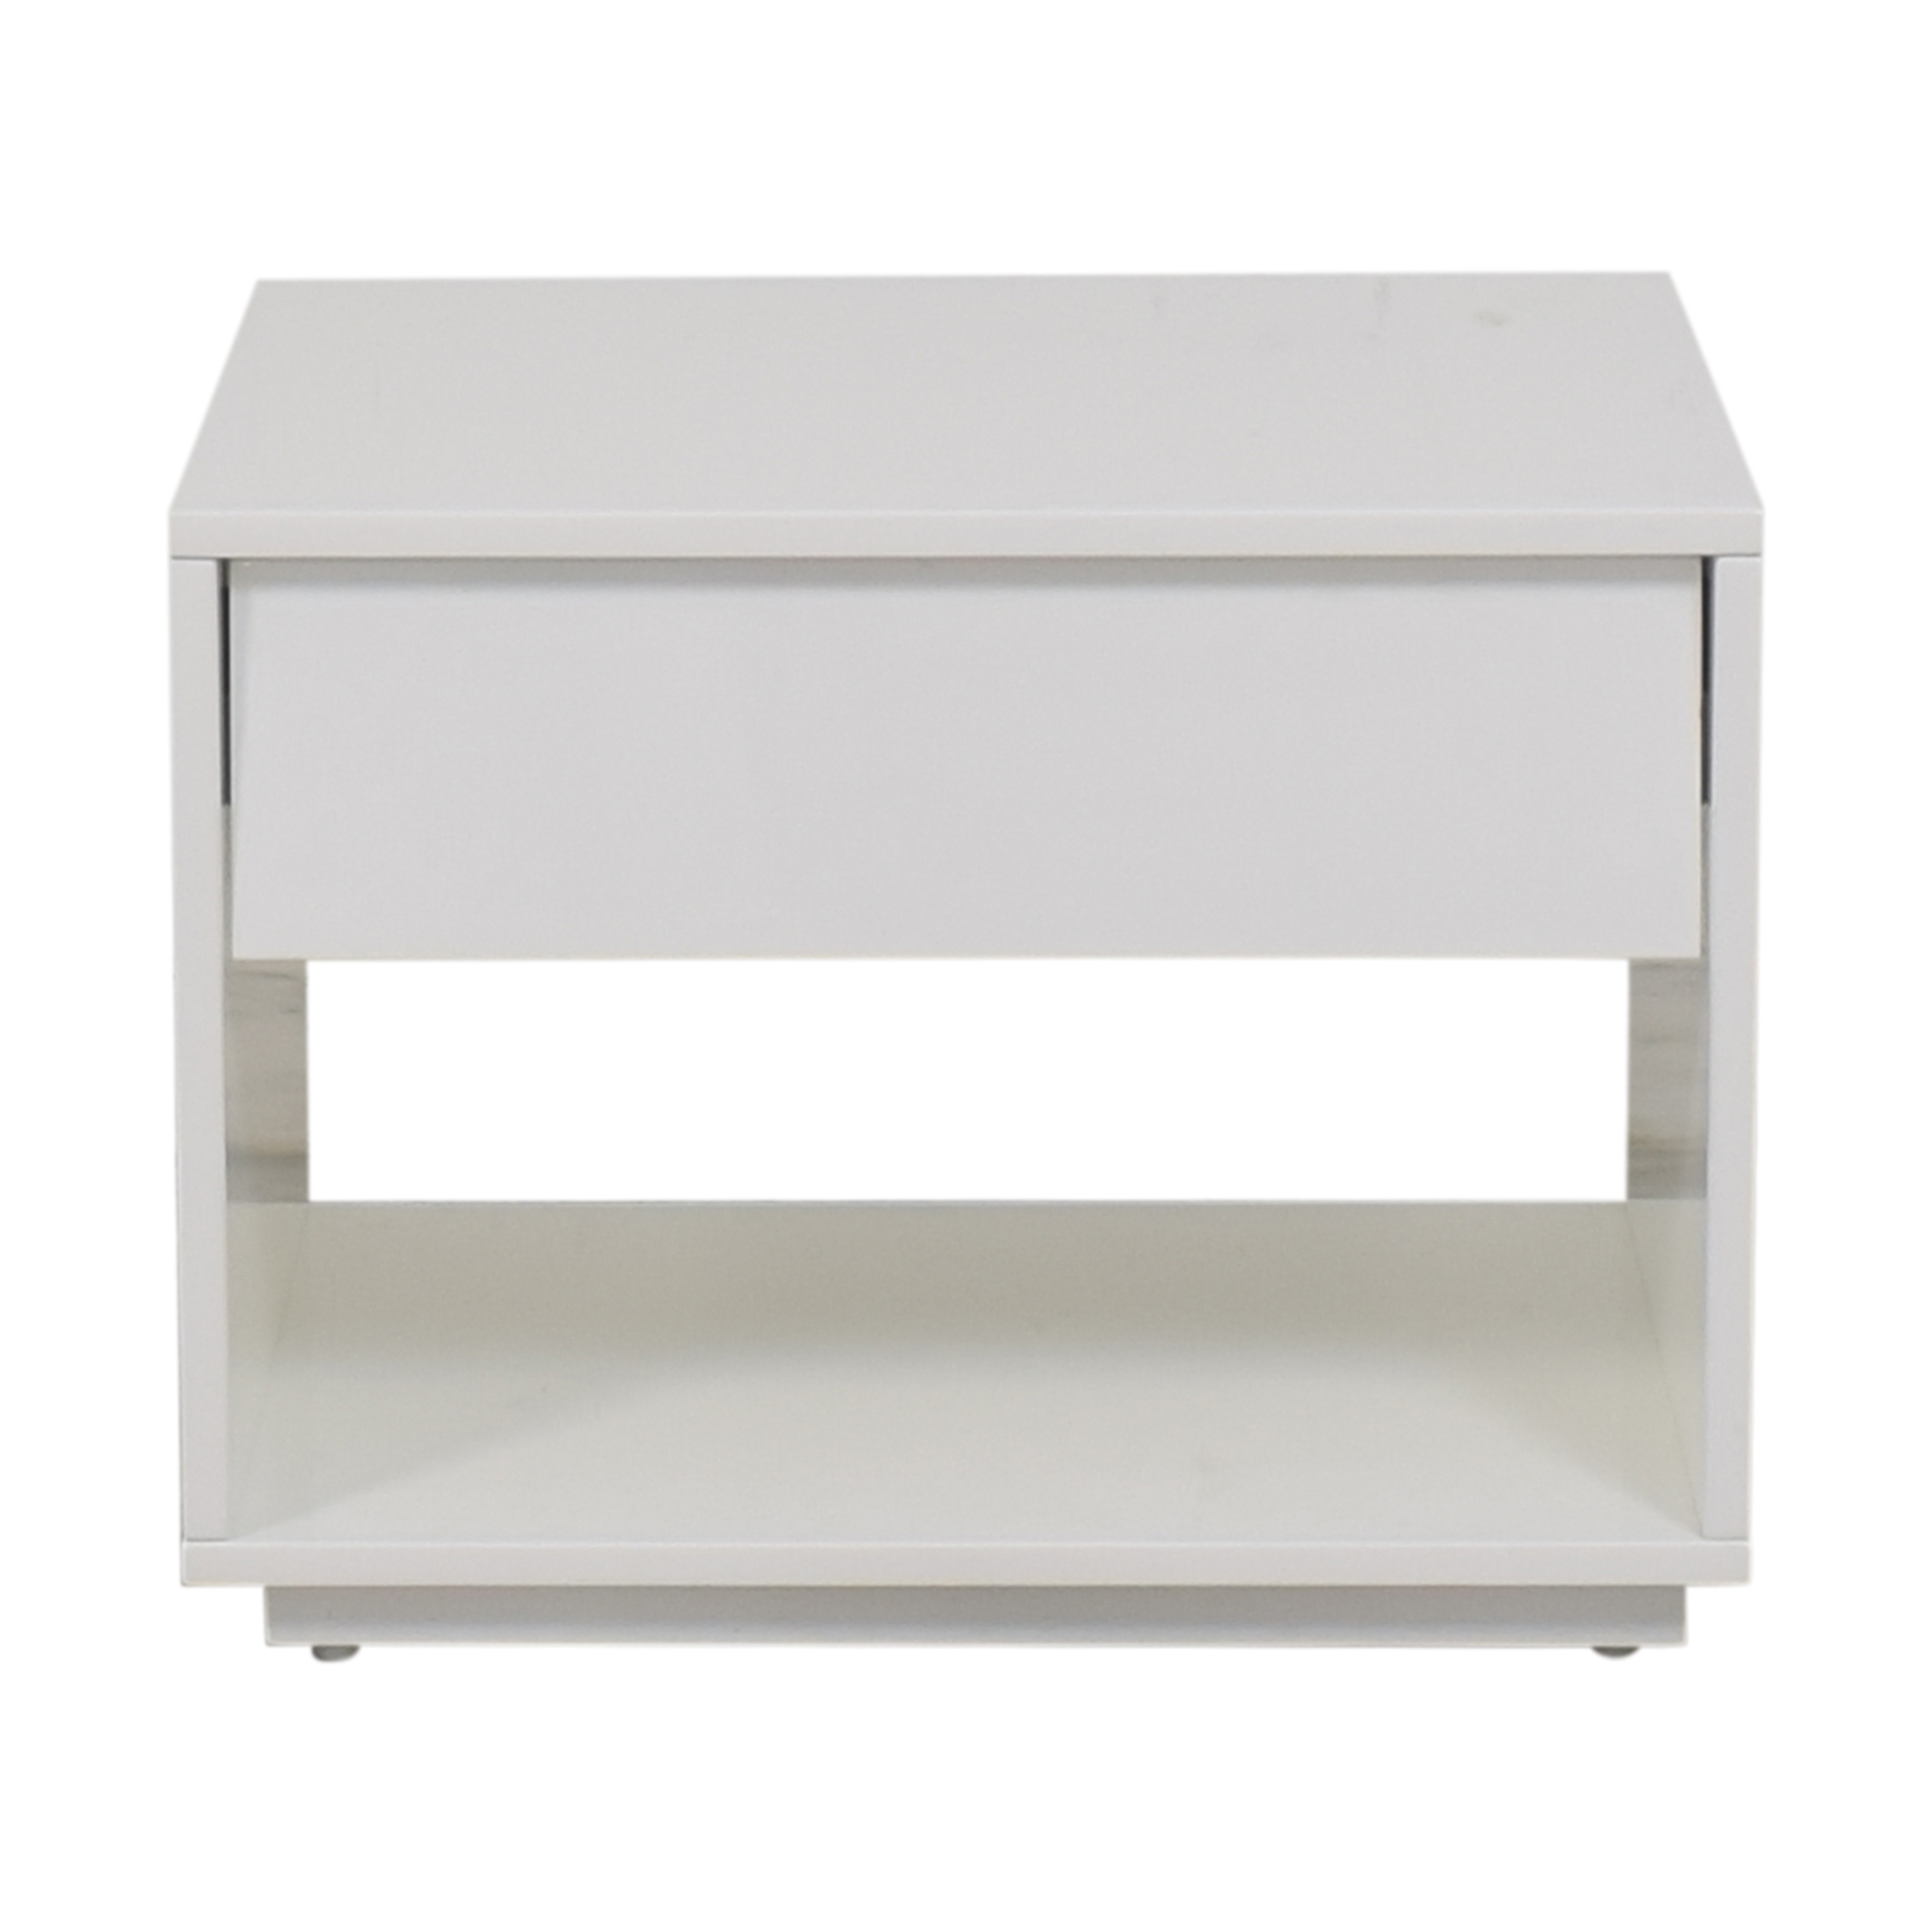 CB2 CB2 Shake One Drawer Nightstand pa